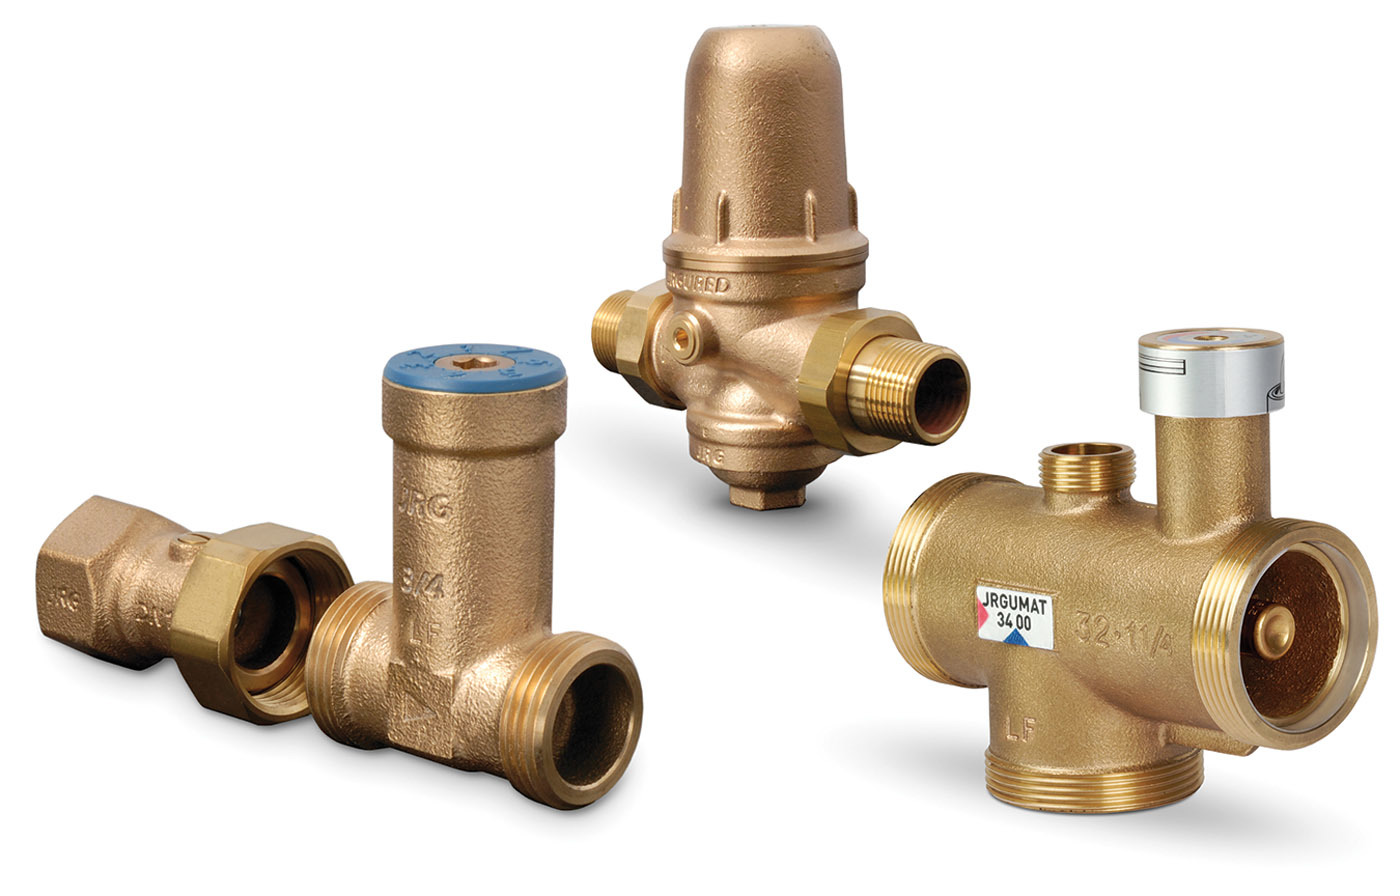 NSF lead-free brass valves from GF Piping Systems